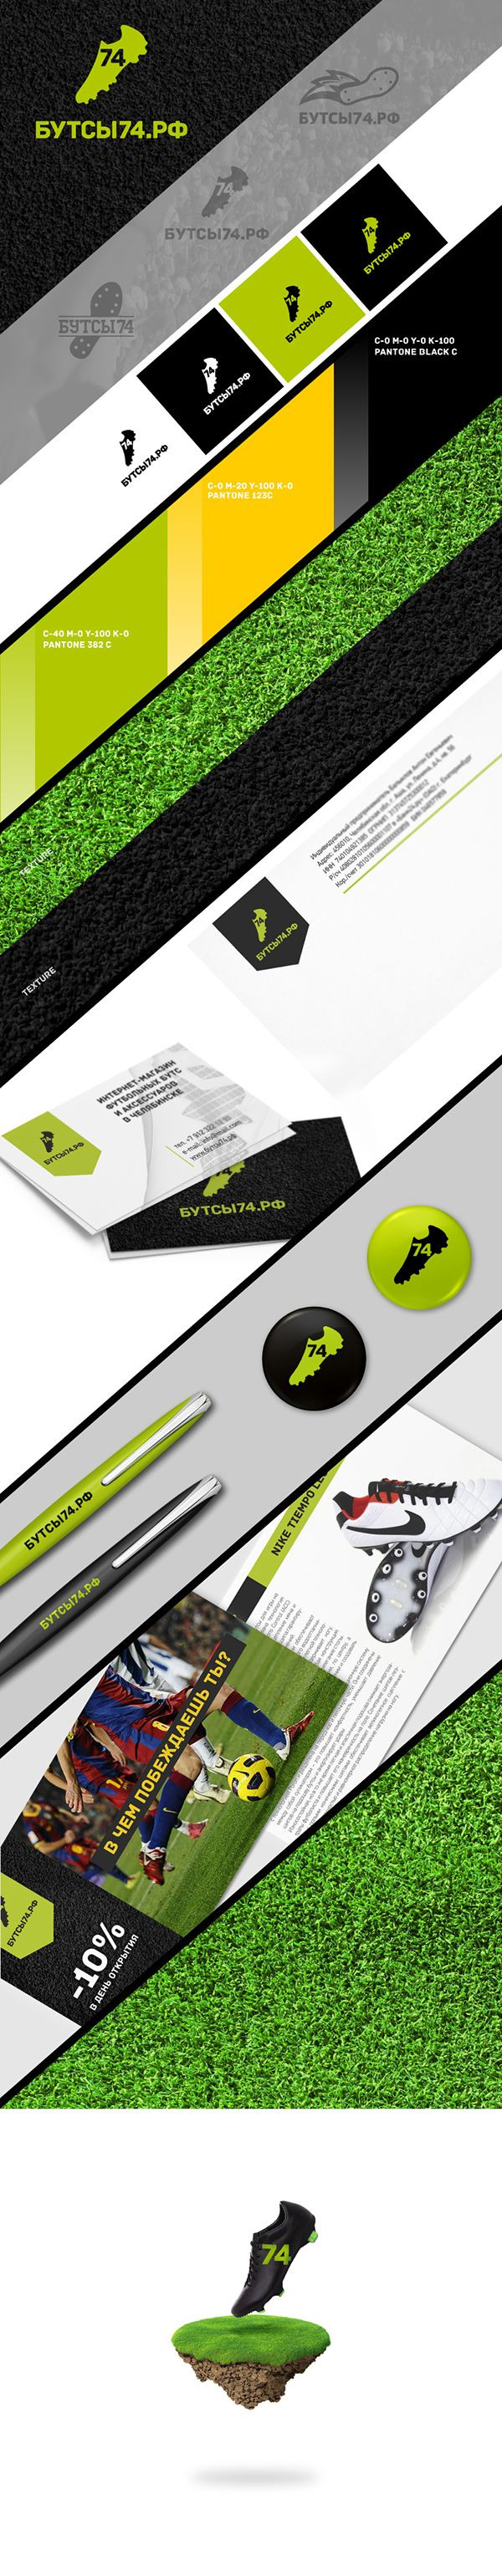 boots74 on Behance